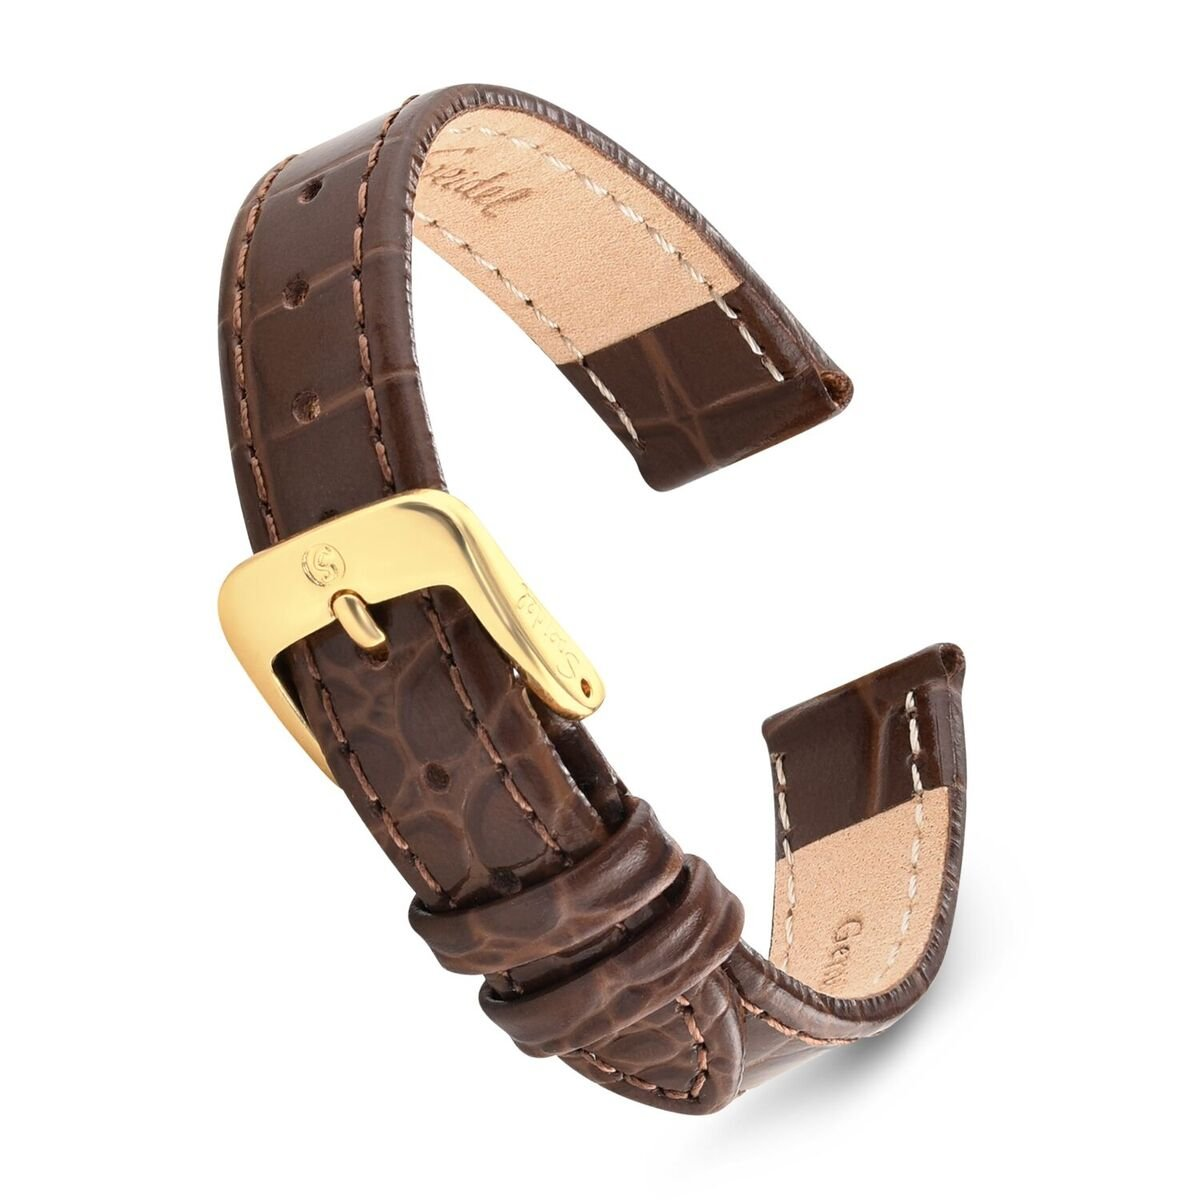 Speidel Genuine Leather Alligator Grain Watch Band 11mm Long Brown Replacement Strap, Stainless Steel Metal Buckle Clasp, Watchband Fits Most Watch Brands by Speidel (Image #1)